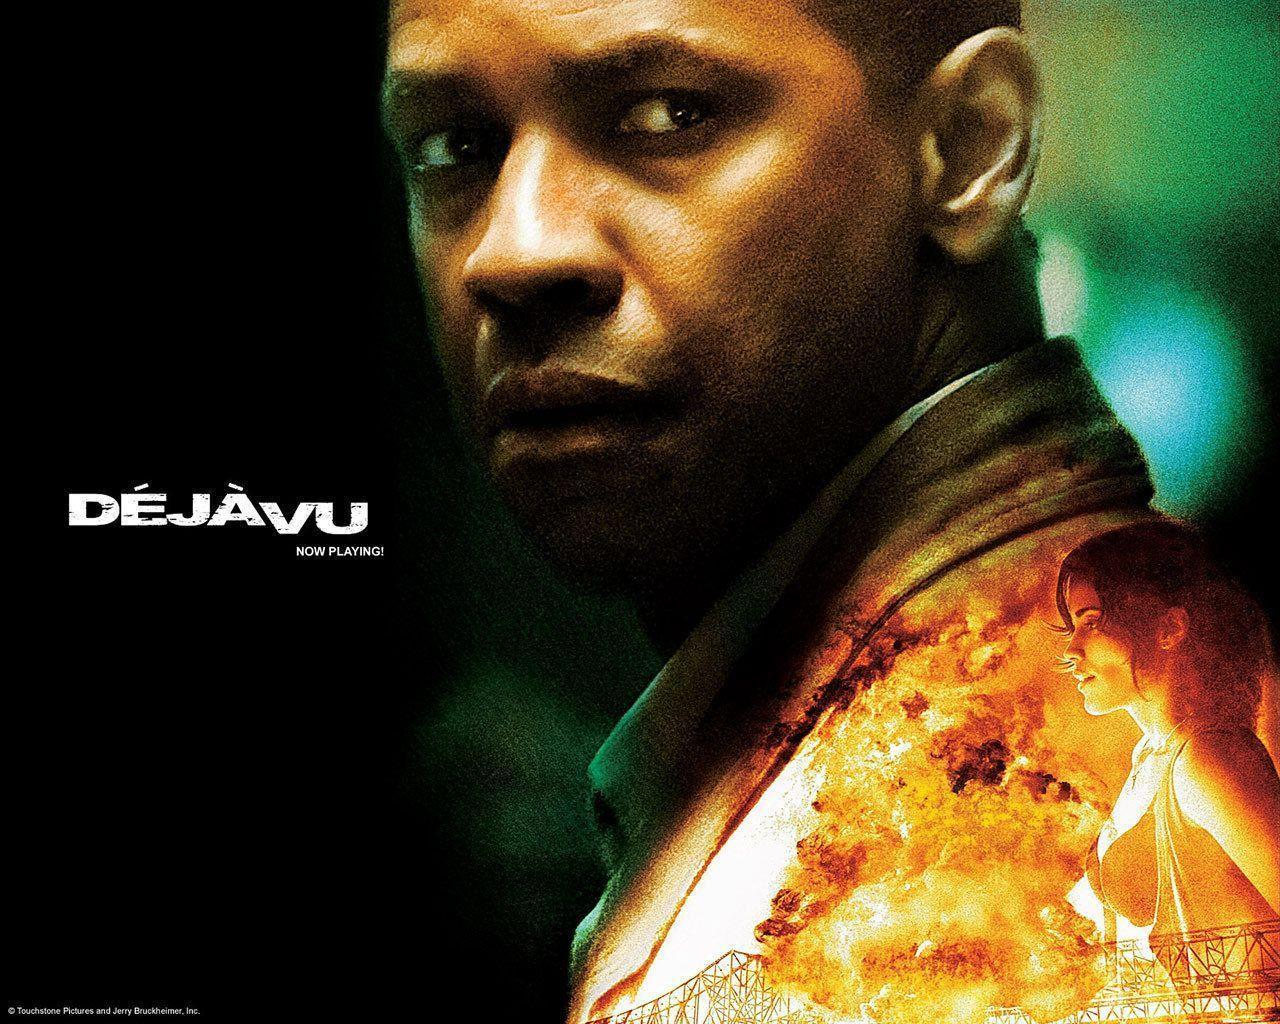 Denzel Washington - Denzel Washington Wallpaper (4386426) - Fanpop